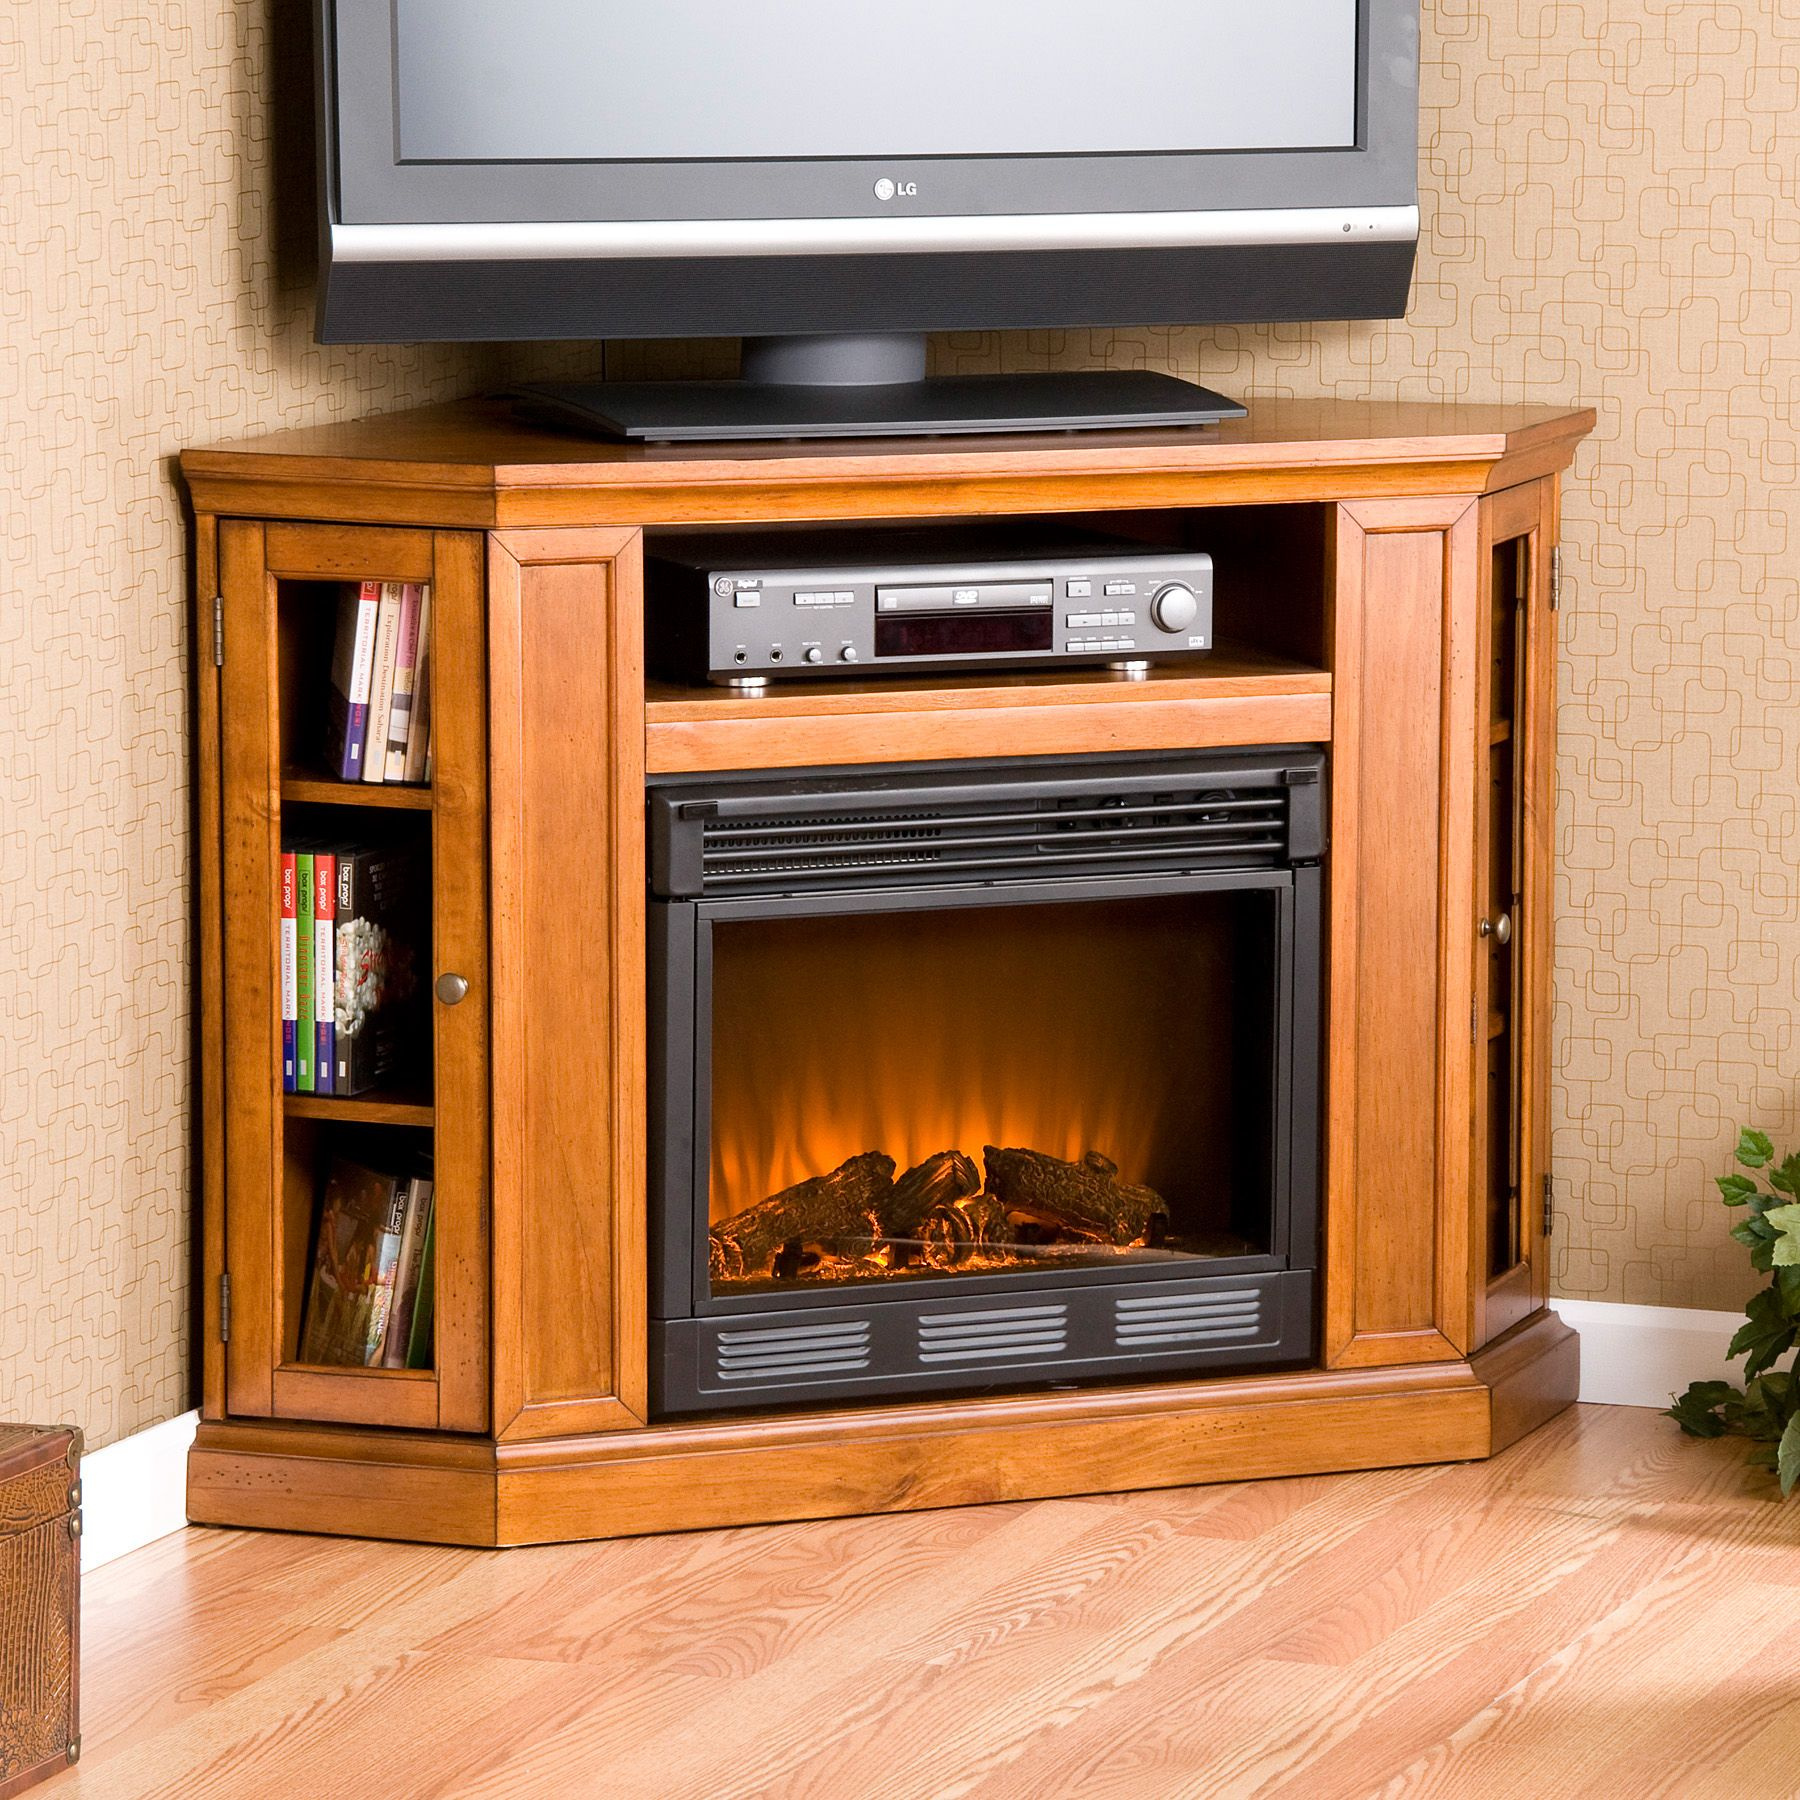 Fireplace tv stand and Electric fireplaces